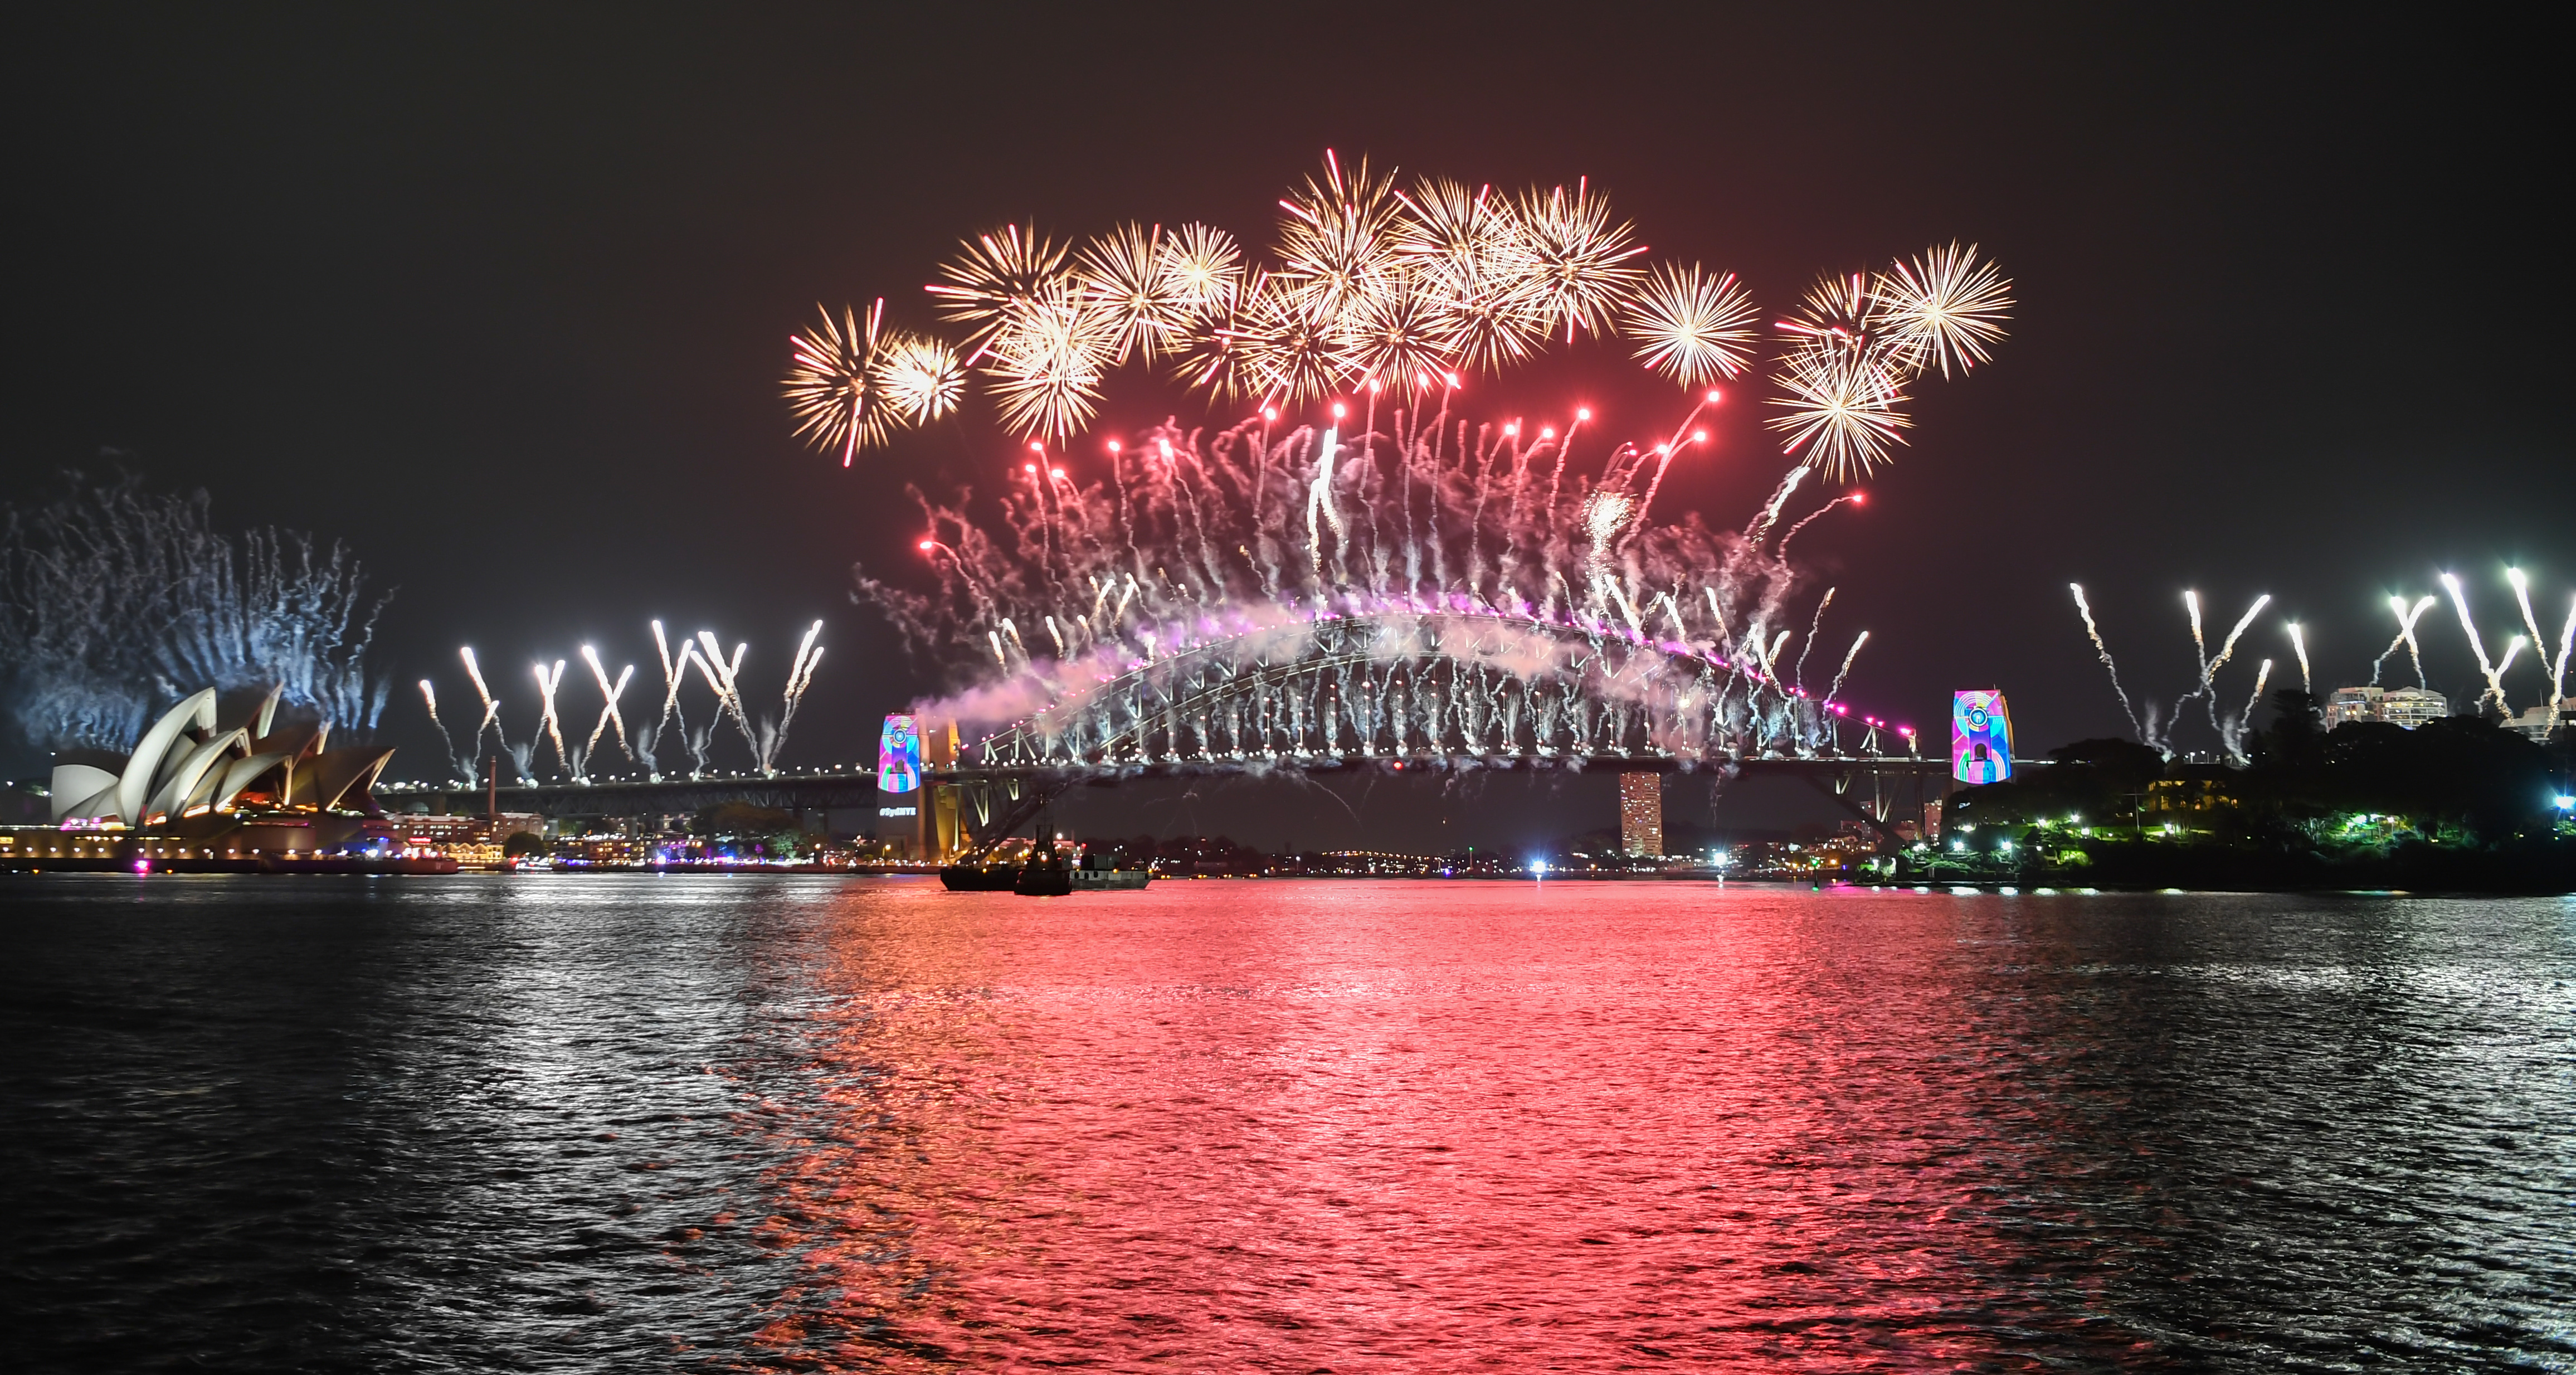 SYDNEY, AUSTRALIA - JANUARY 01: The Sydney Harbour Bridge is bathed in fireworks and lighting effects during New Year's Eve celebrations on January 1, 2019 in Sydney, Australia. (Photo by James D. Morgan/Getty Images)